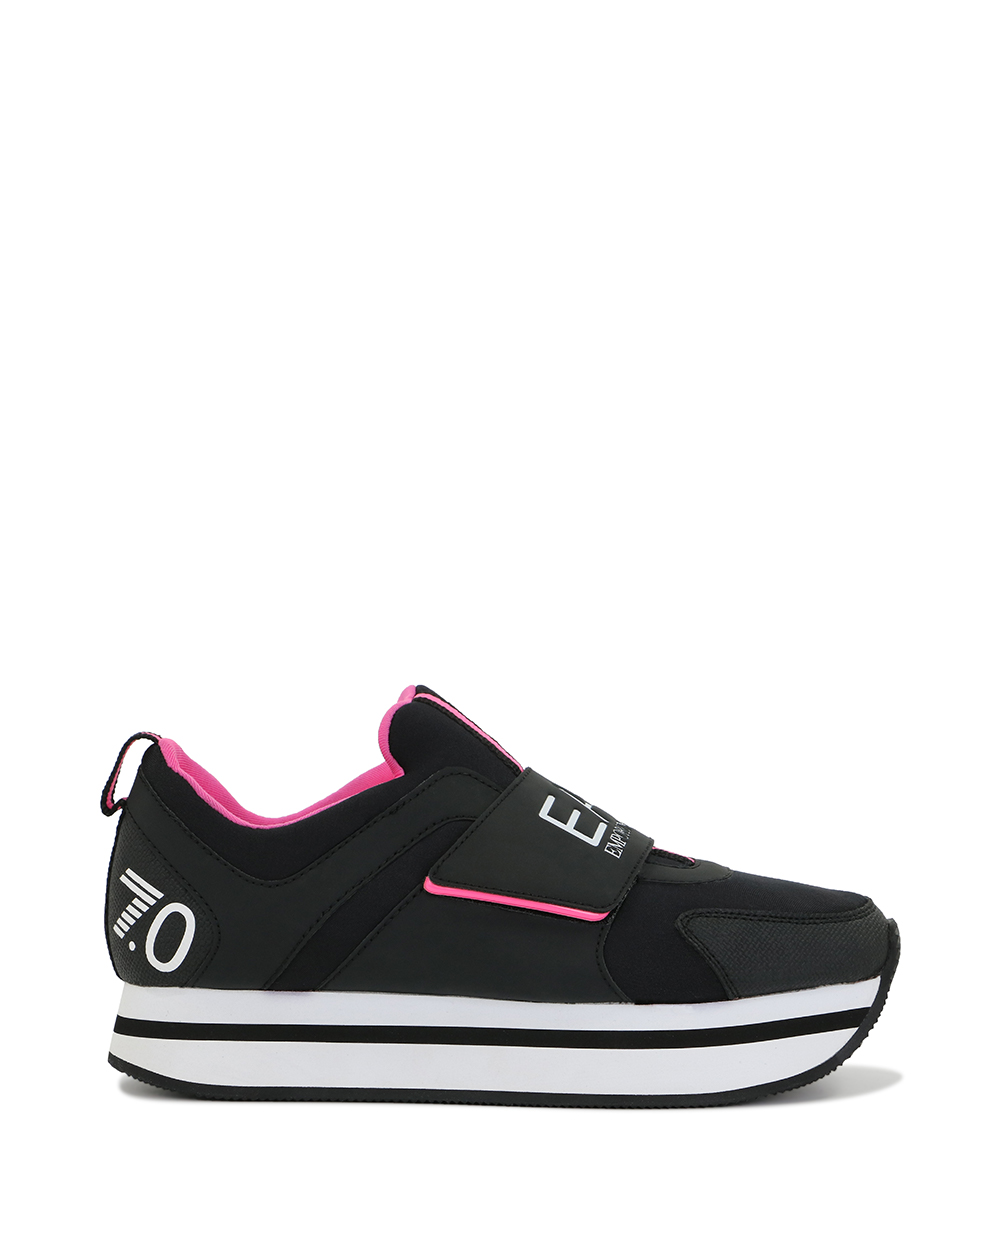 ISSI BOUTIQUE EA7 Trainers Sneakers